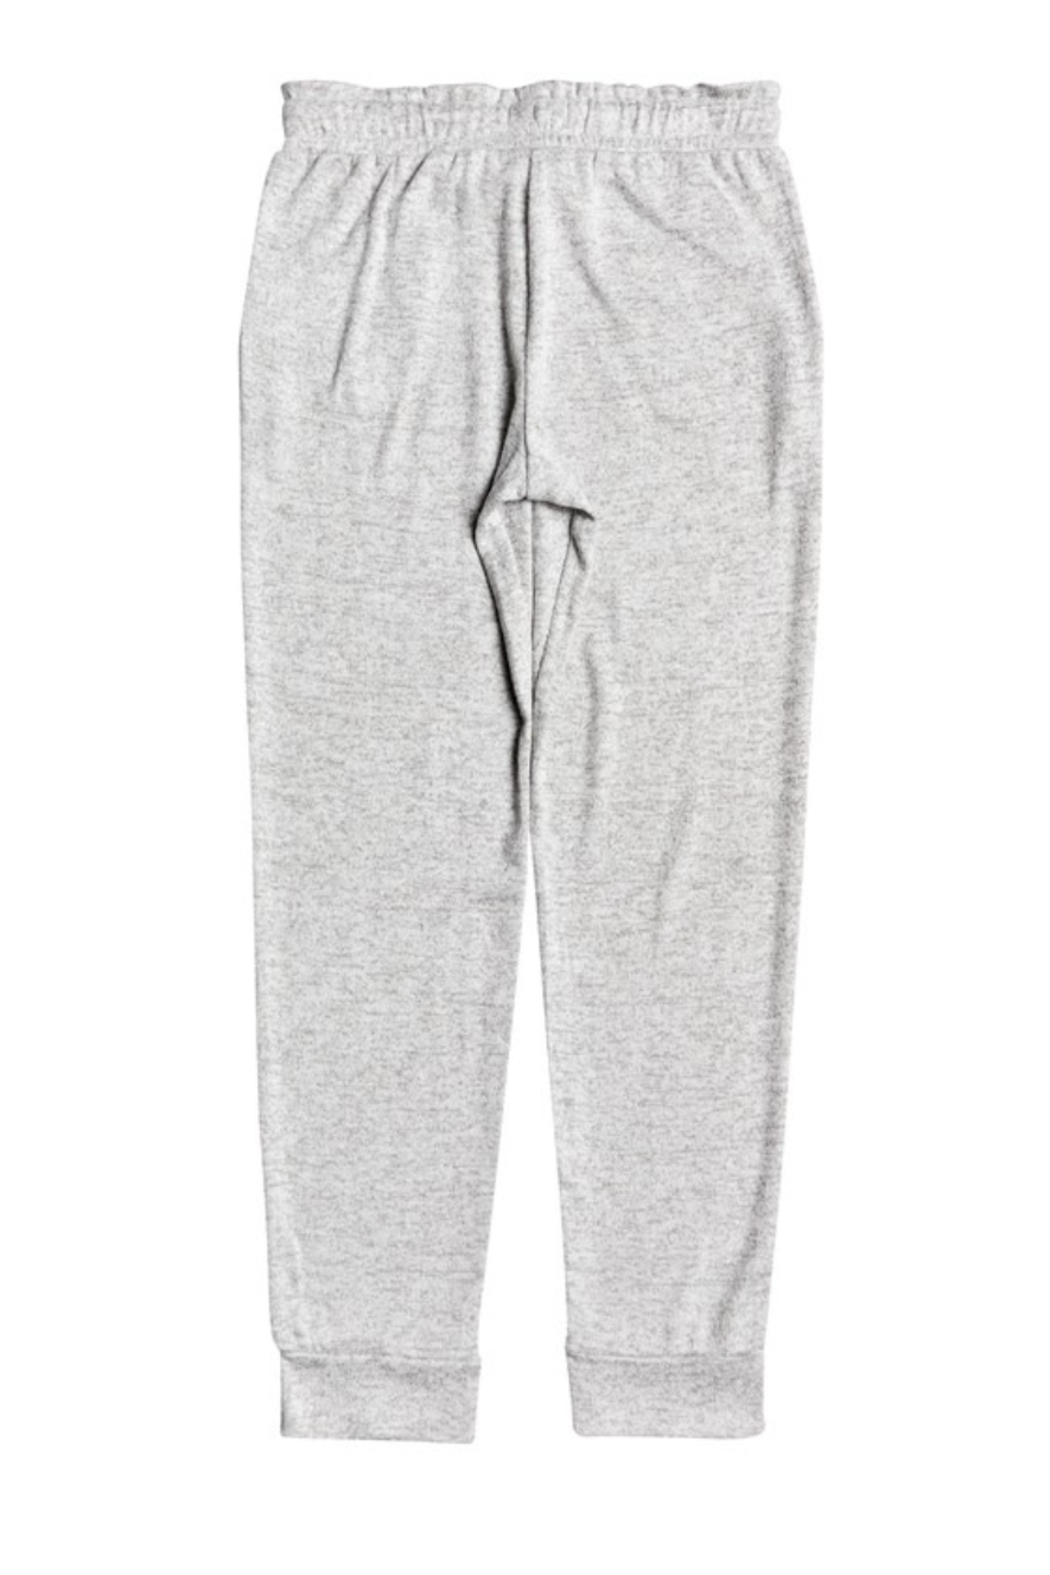 Roxy Secret Song Super Soft Joggers - Front Full Image